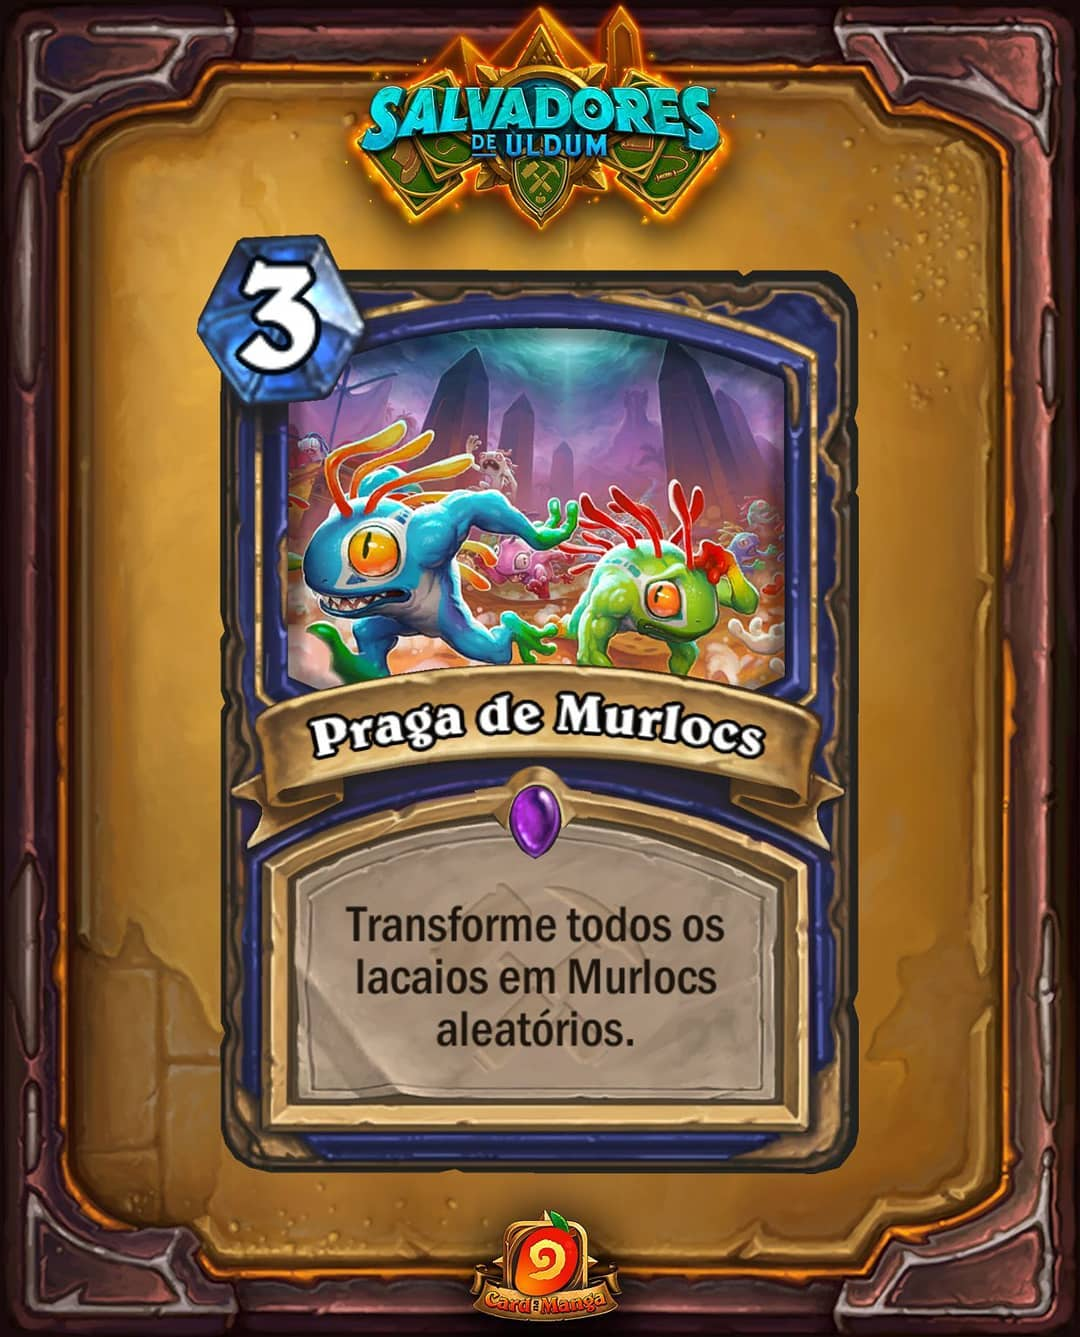 Praga de Murlocs - Card PTBR Reveal